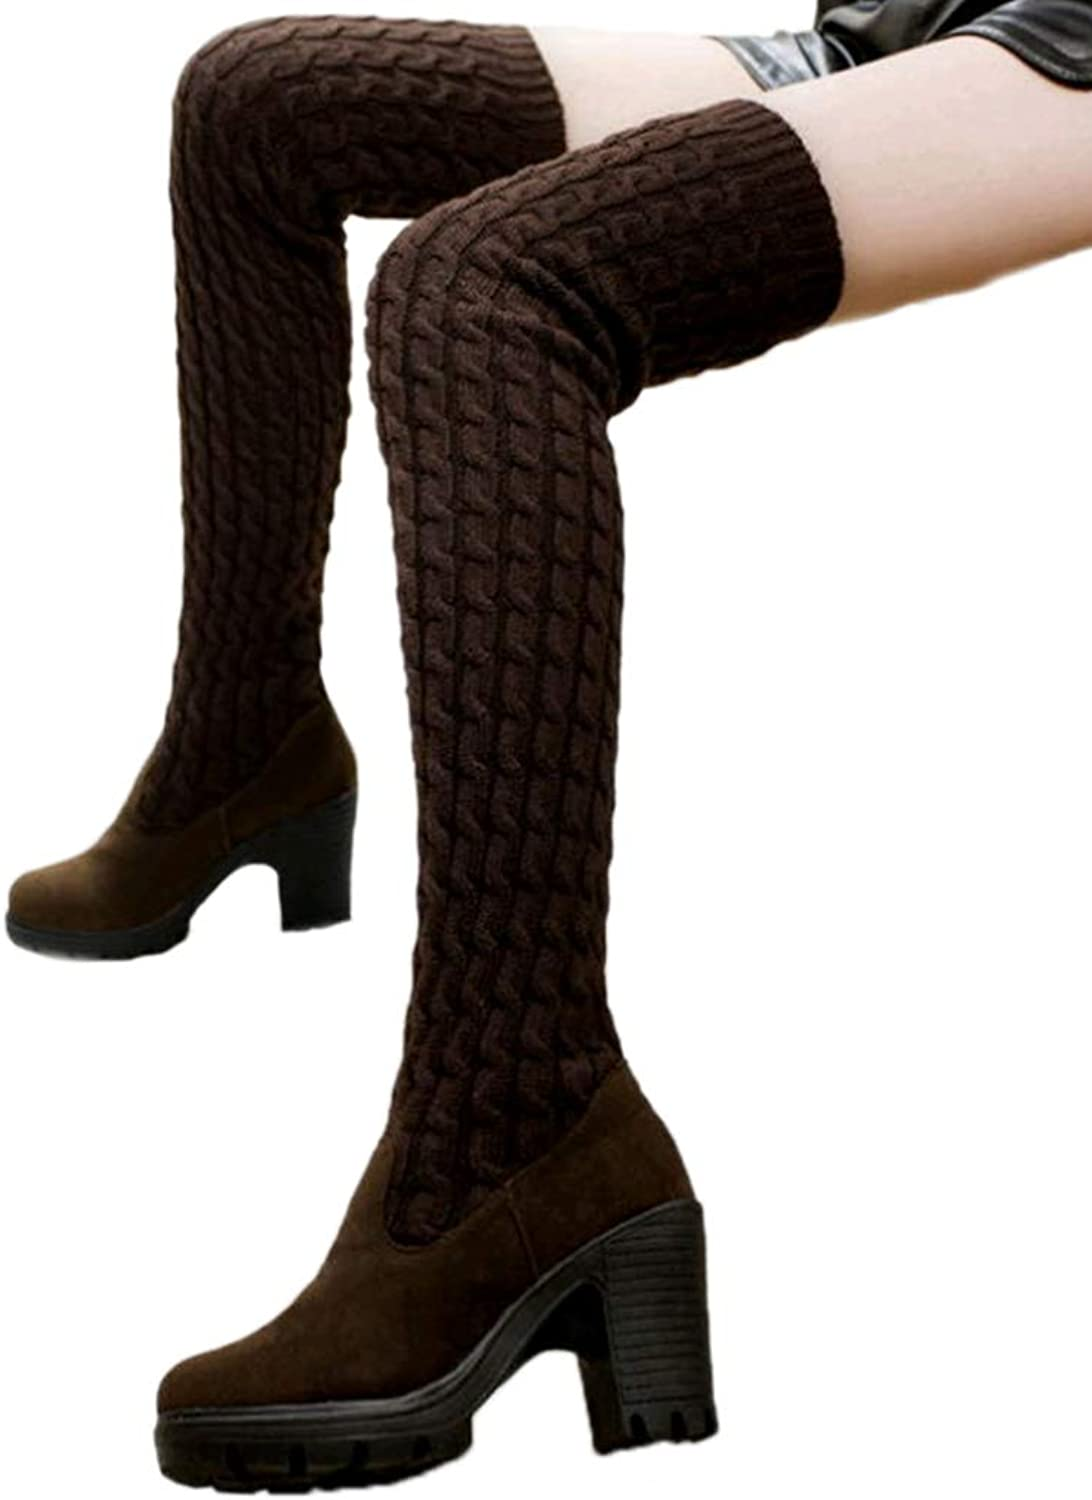 Women shoes Over The Knee High Ladies Wool Plush Thigh High Long Boot Fashion Winter Spring Boots